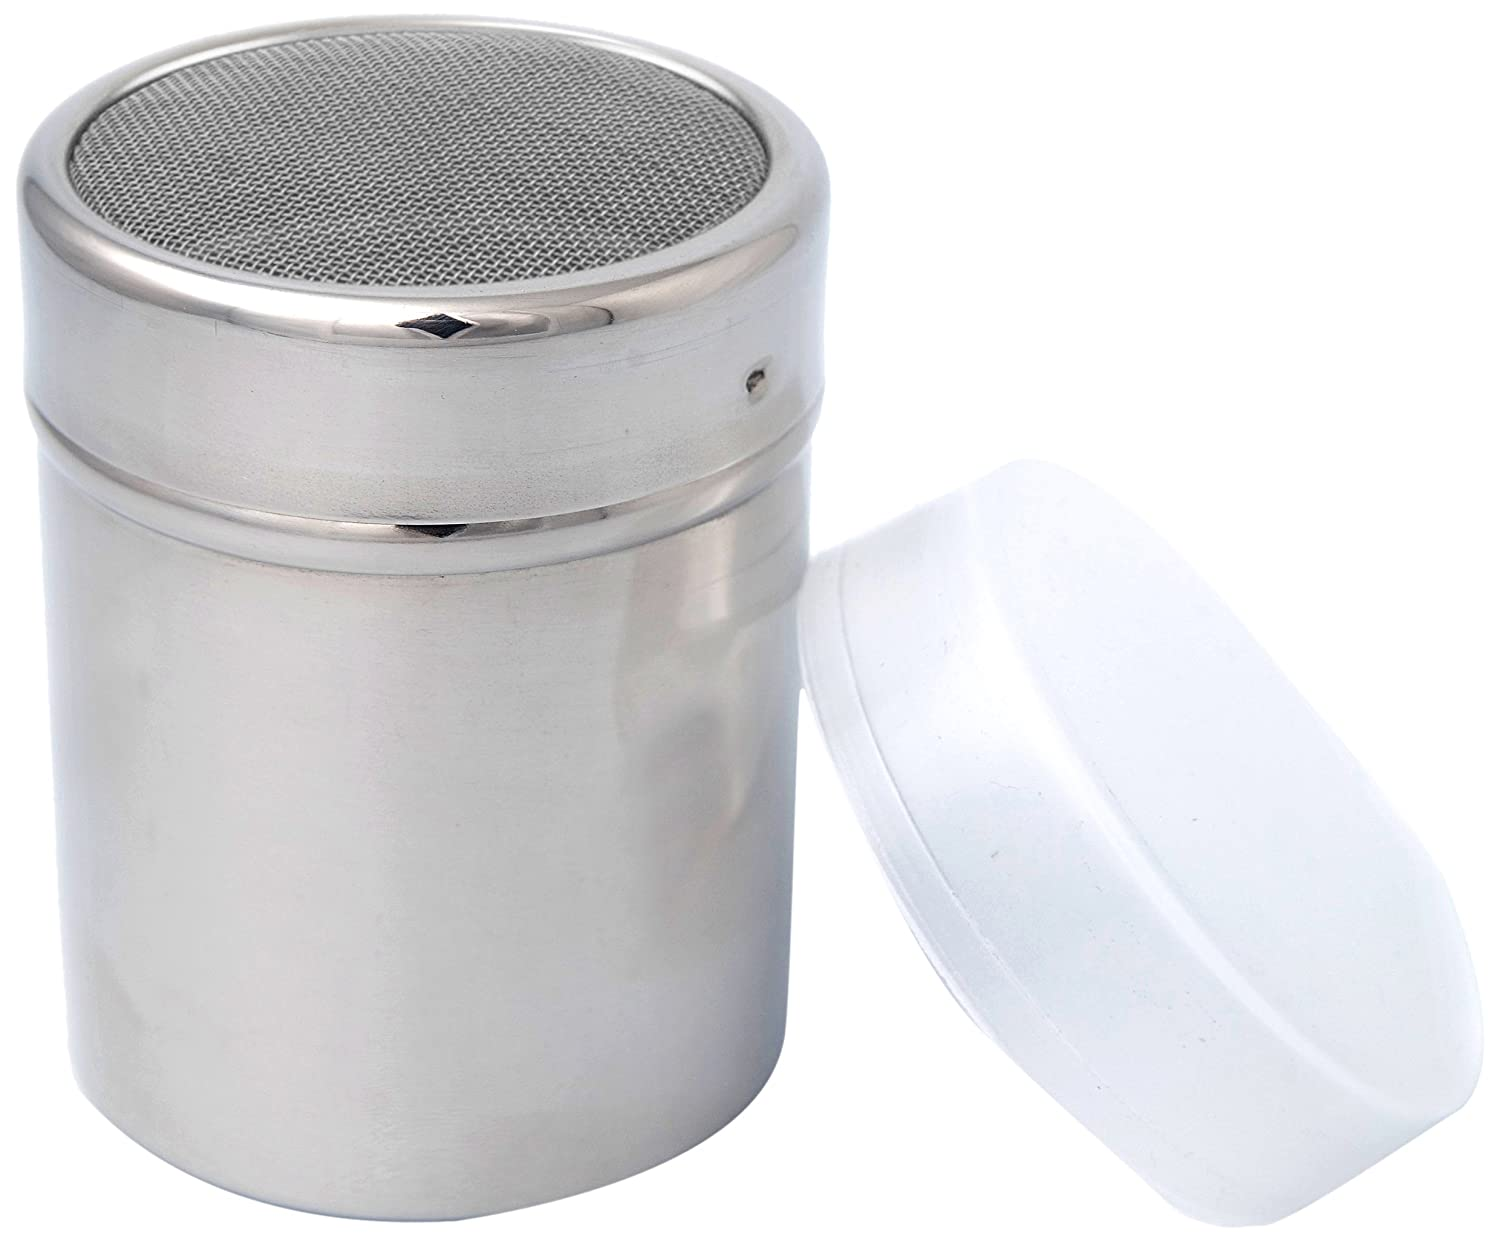 Cuisinox DIS-20 Mesh Top Dispenser, Stainless Steel Cuisinox (Import)